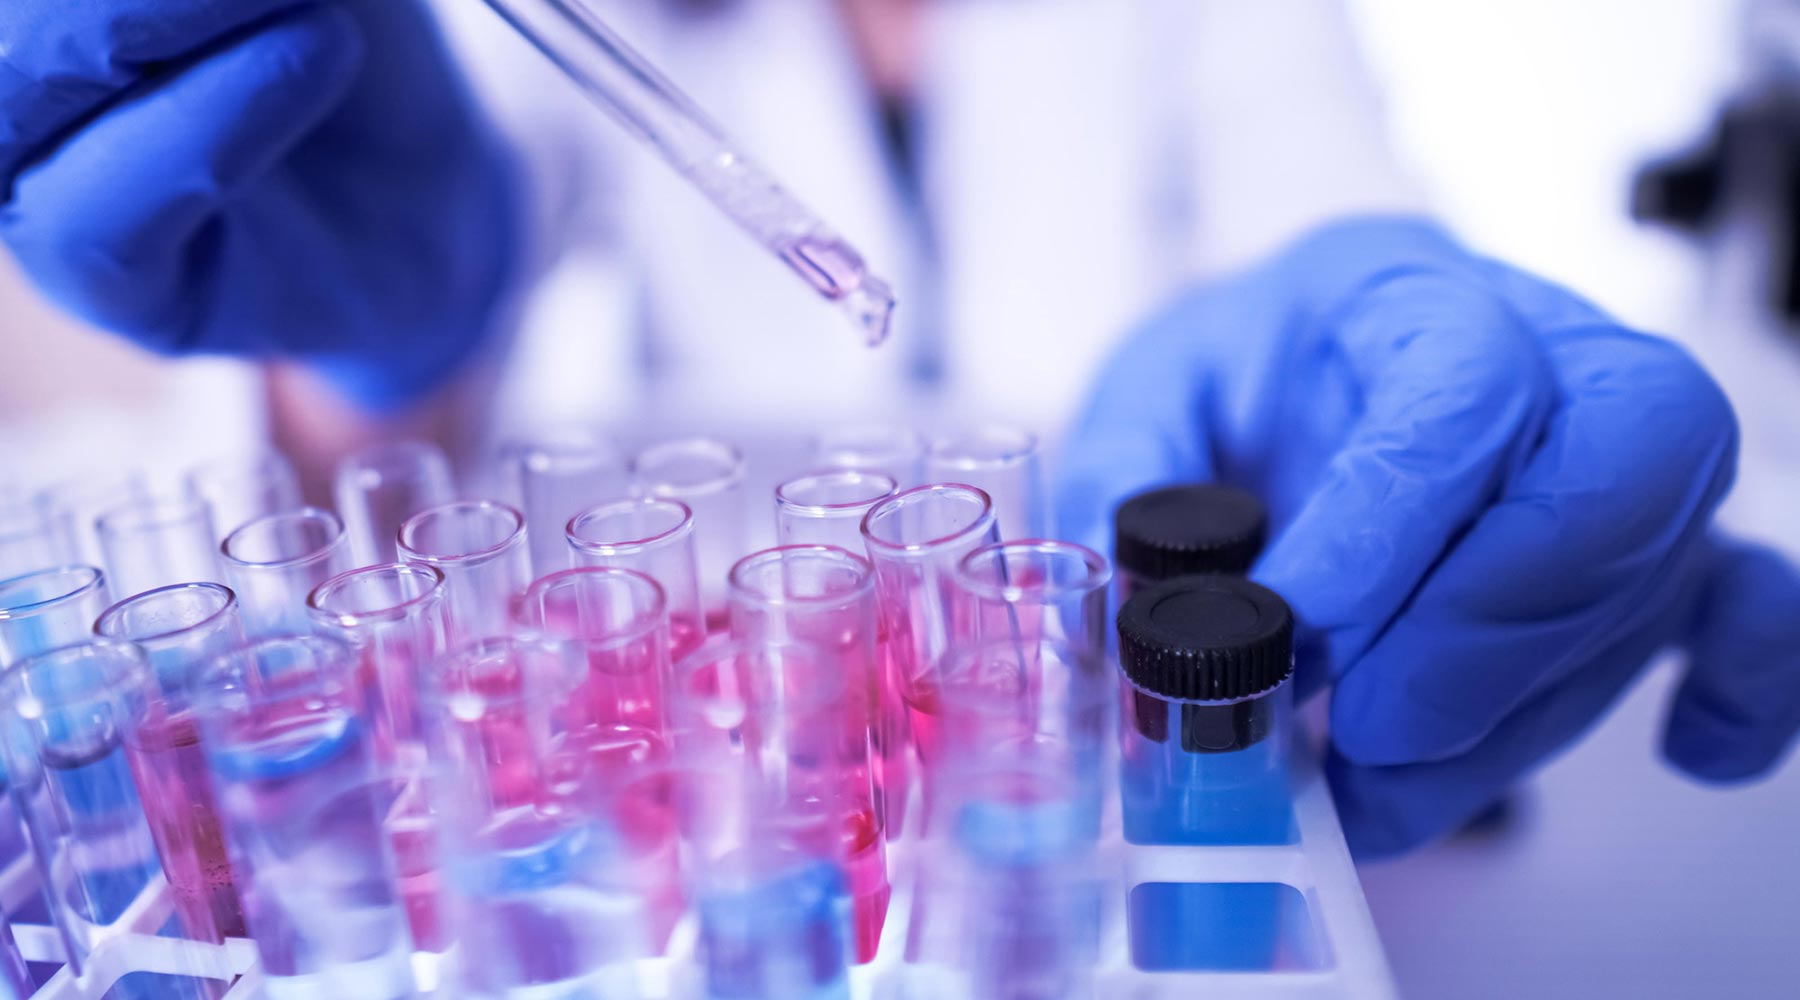 Can Lab Technicians Be Sued for Malpractice?